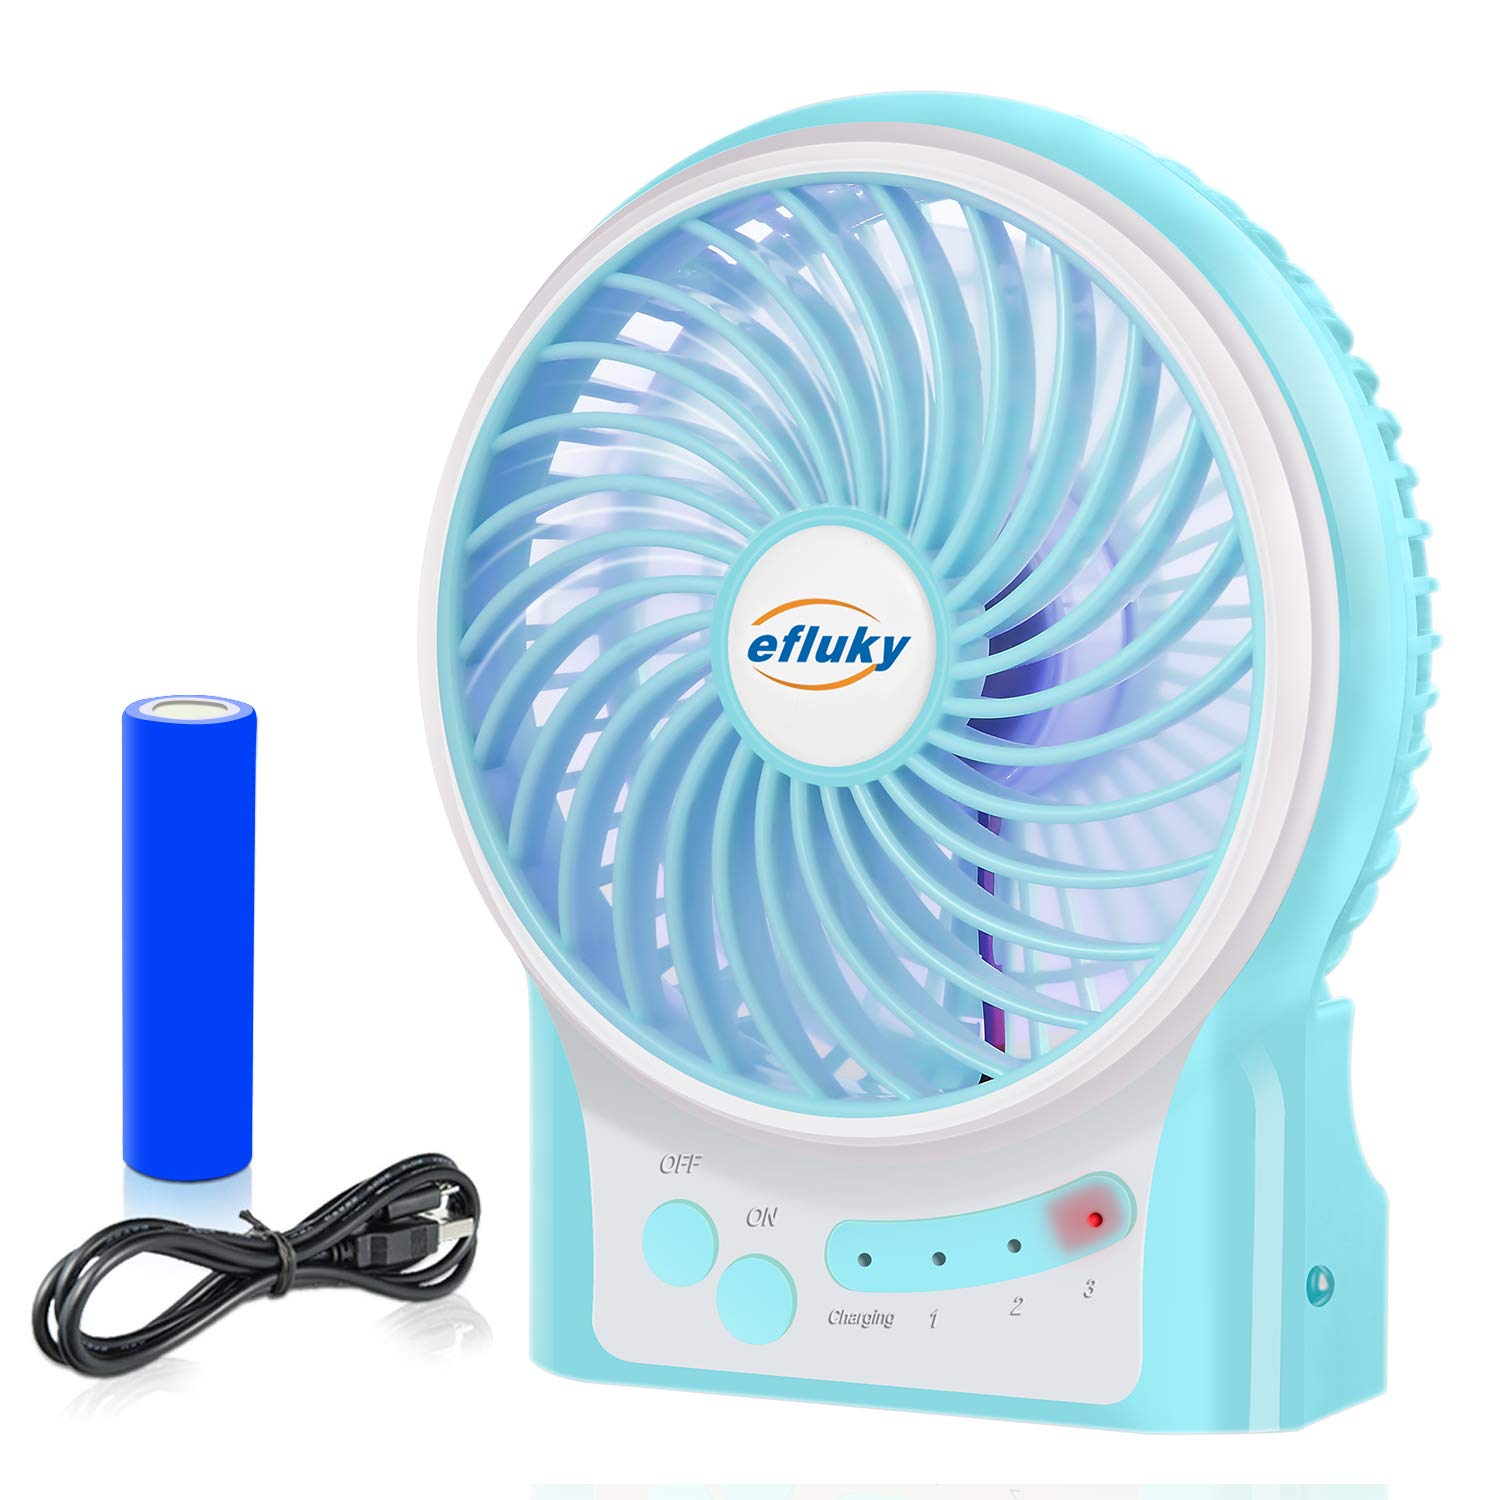 efluky 3 Speeds Mini Desk Fan, Rechargeable Battery Operated Fan with LED Light and 2200mAh Battery, Portable USB Fan Quiet for Home, Office, Travel, Camping, Outdoor, Indoor Fan, 4.9-Inch,Blue